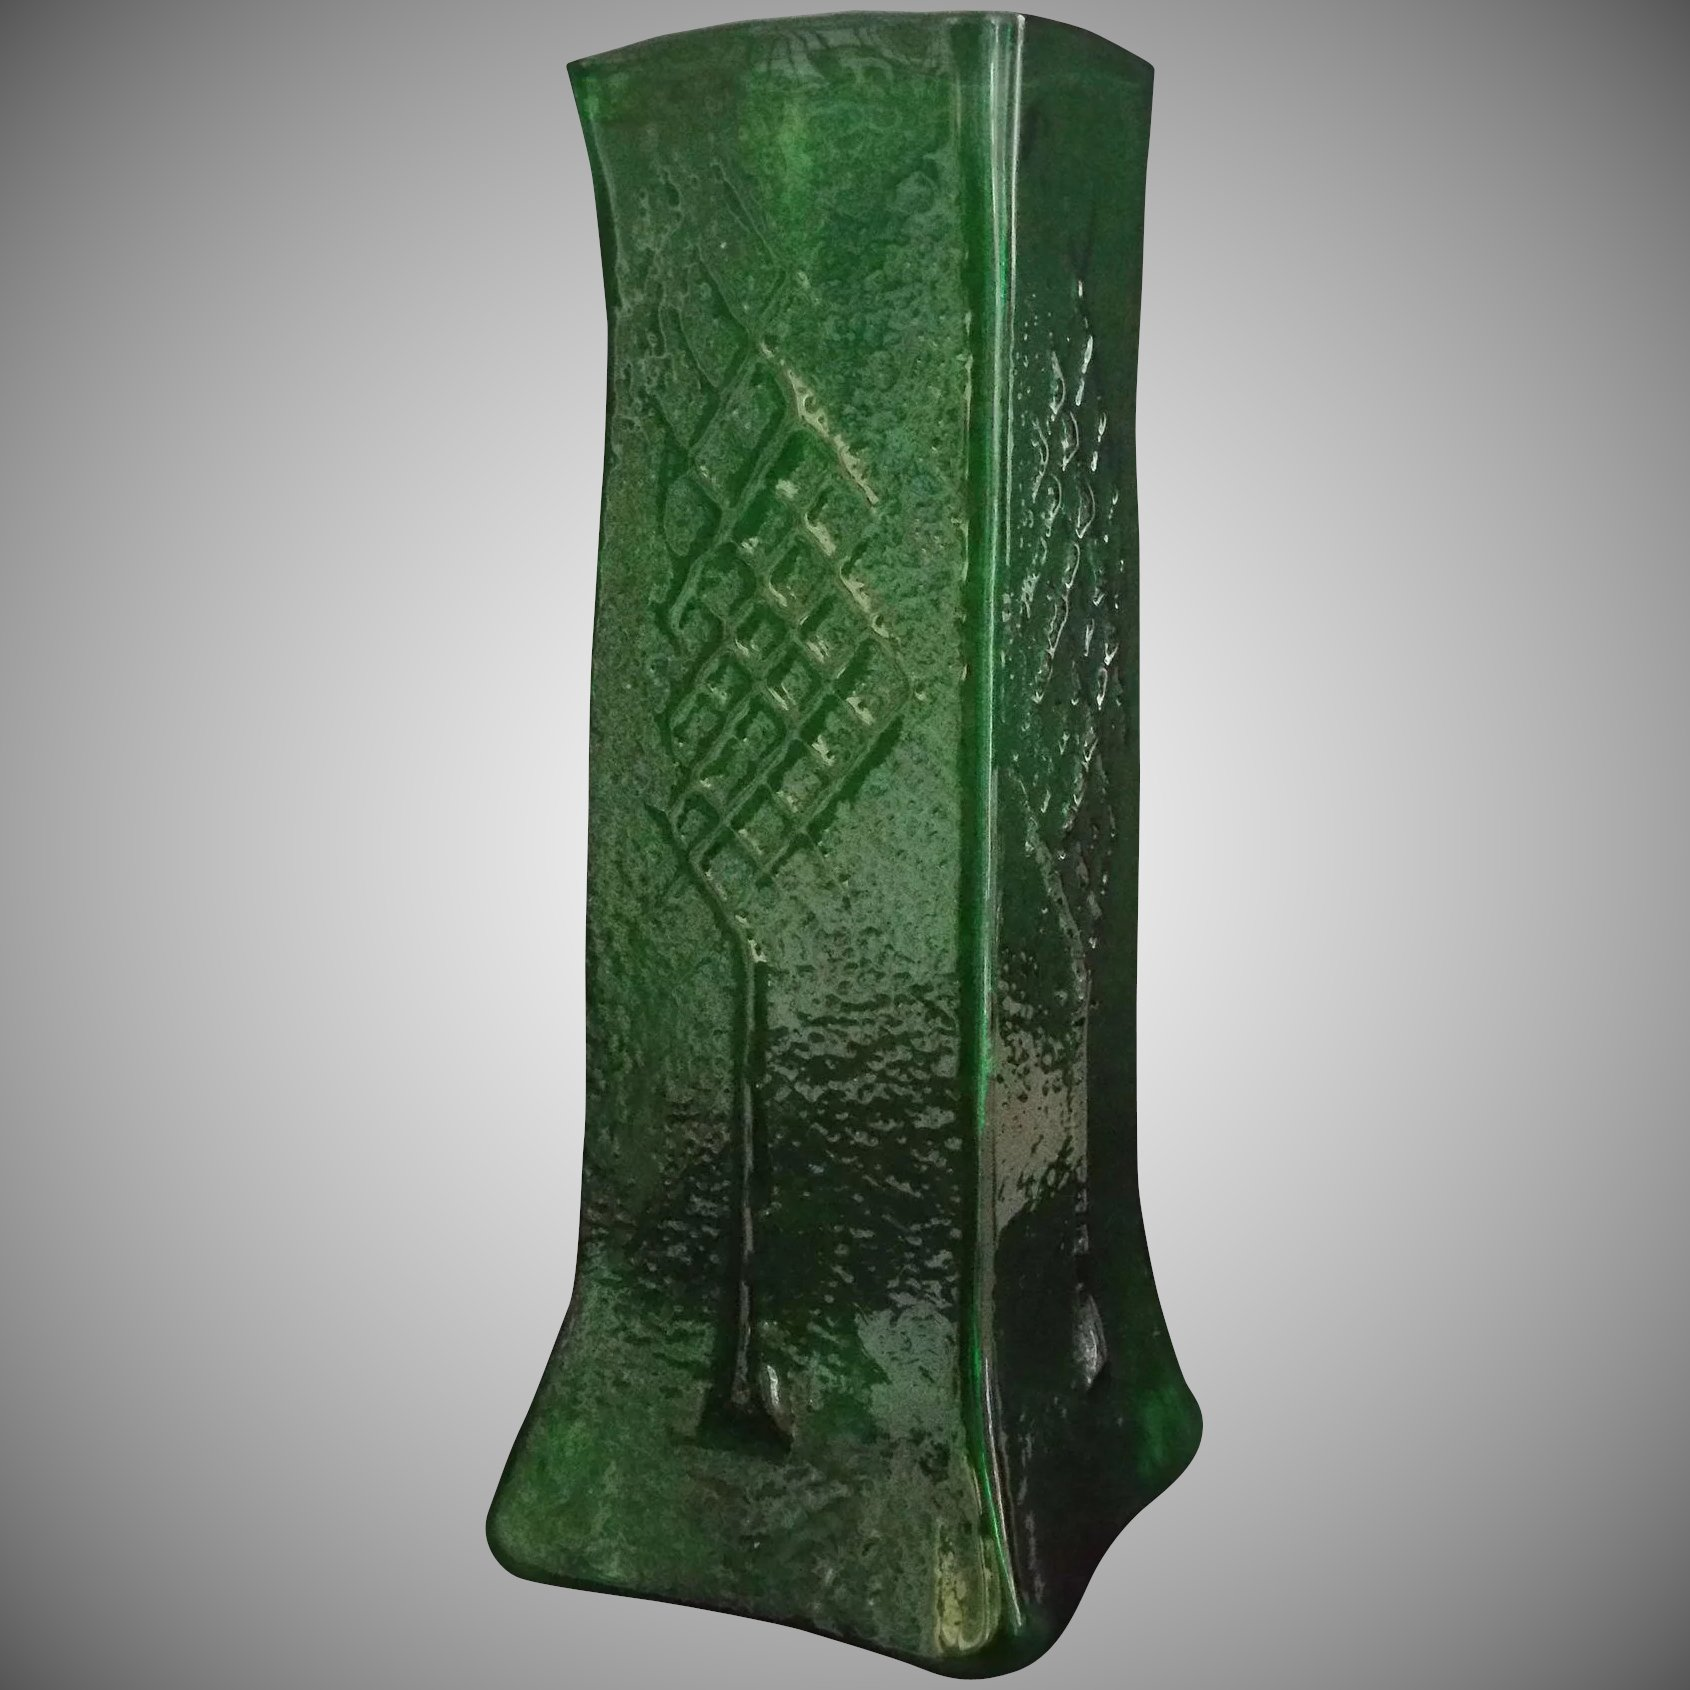 Magnificent Emerald Green Tall OOAK square Art Gl Funeral Vase ... on 7 cylinder vase, roses in cylinder vase, 3 cylinder vase, silver cylinder vase, 9 cylinder vase, 20 cylinder vase, 6 cylinder vase, 8 cylinder vase, red cylinder vase, 12 cylinder vase,